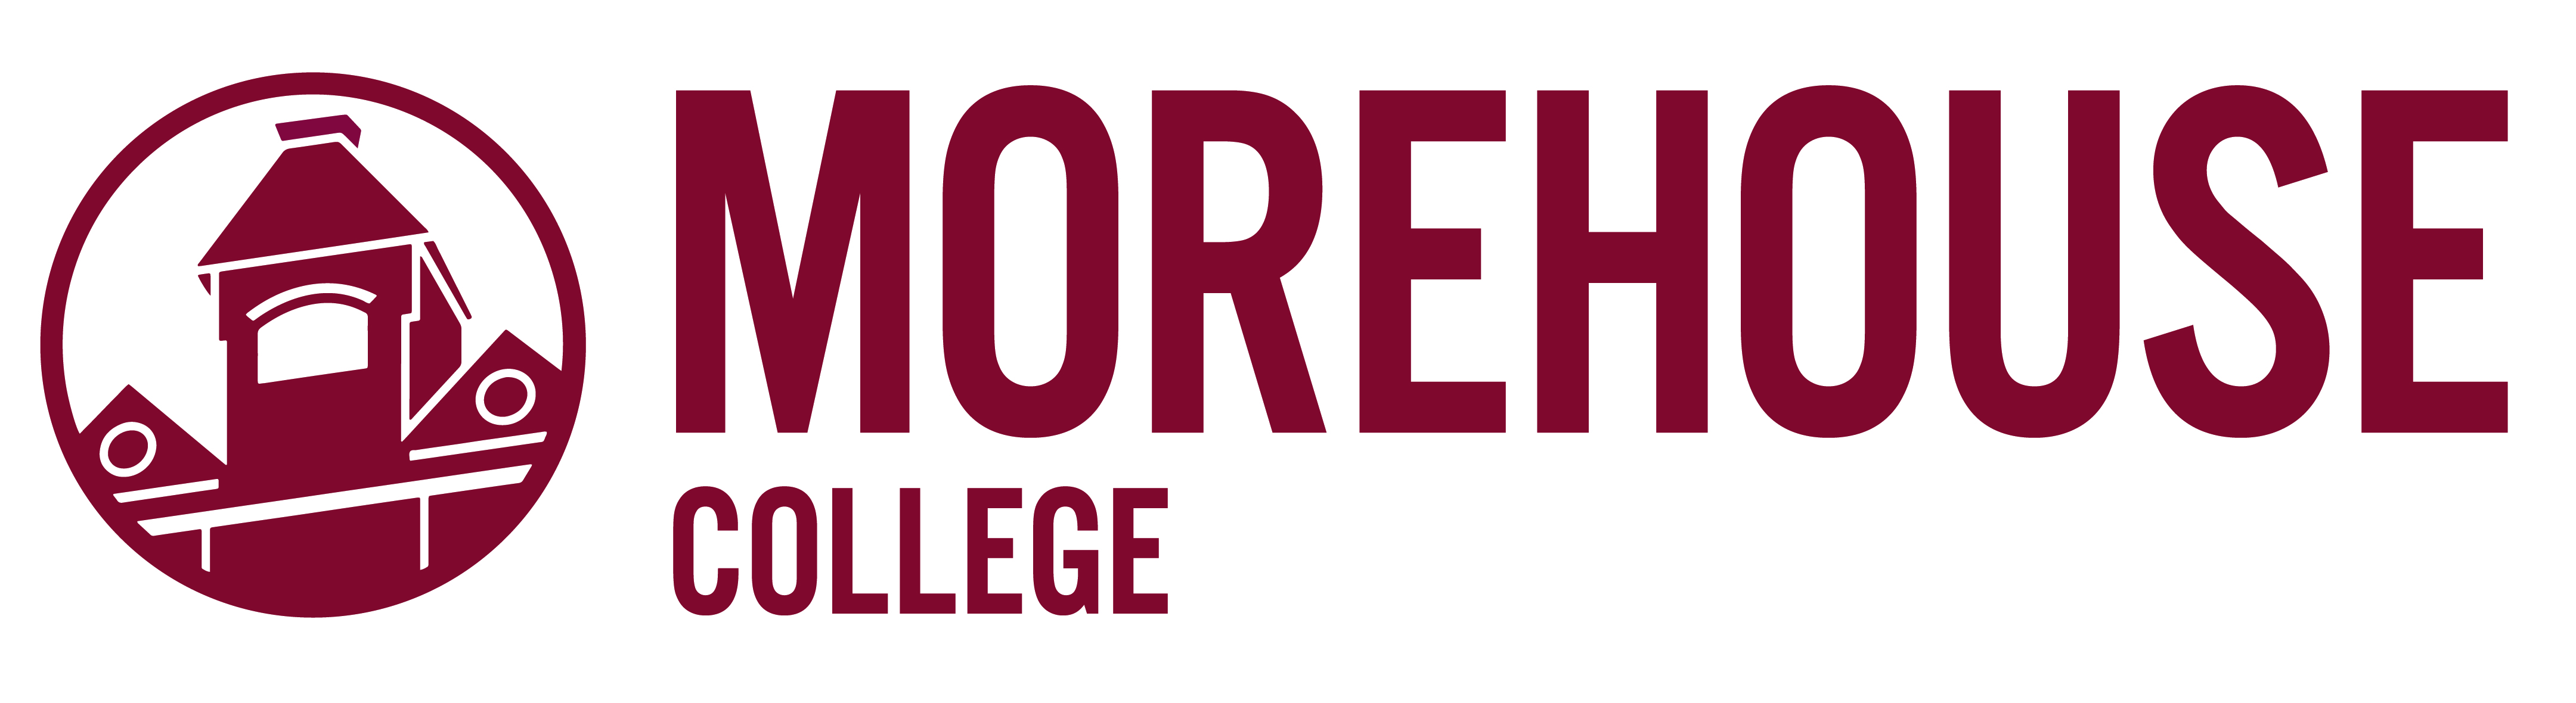 Morehouse-College-1585418312.jpg